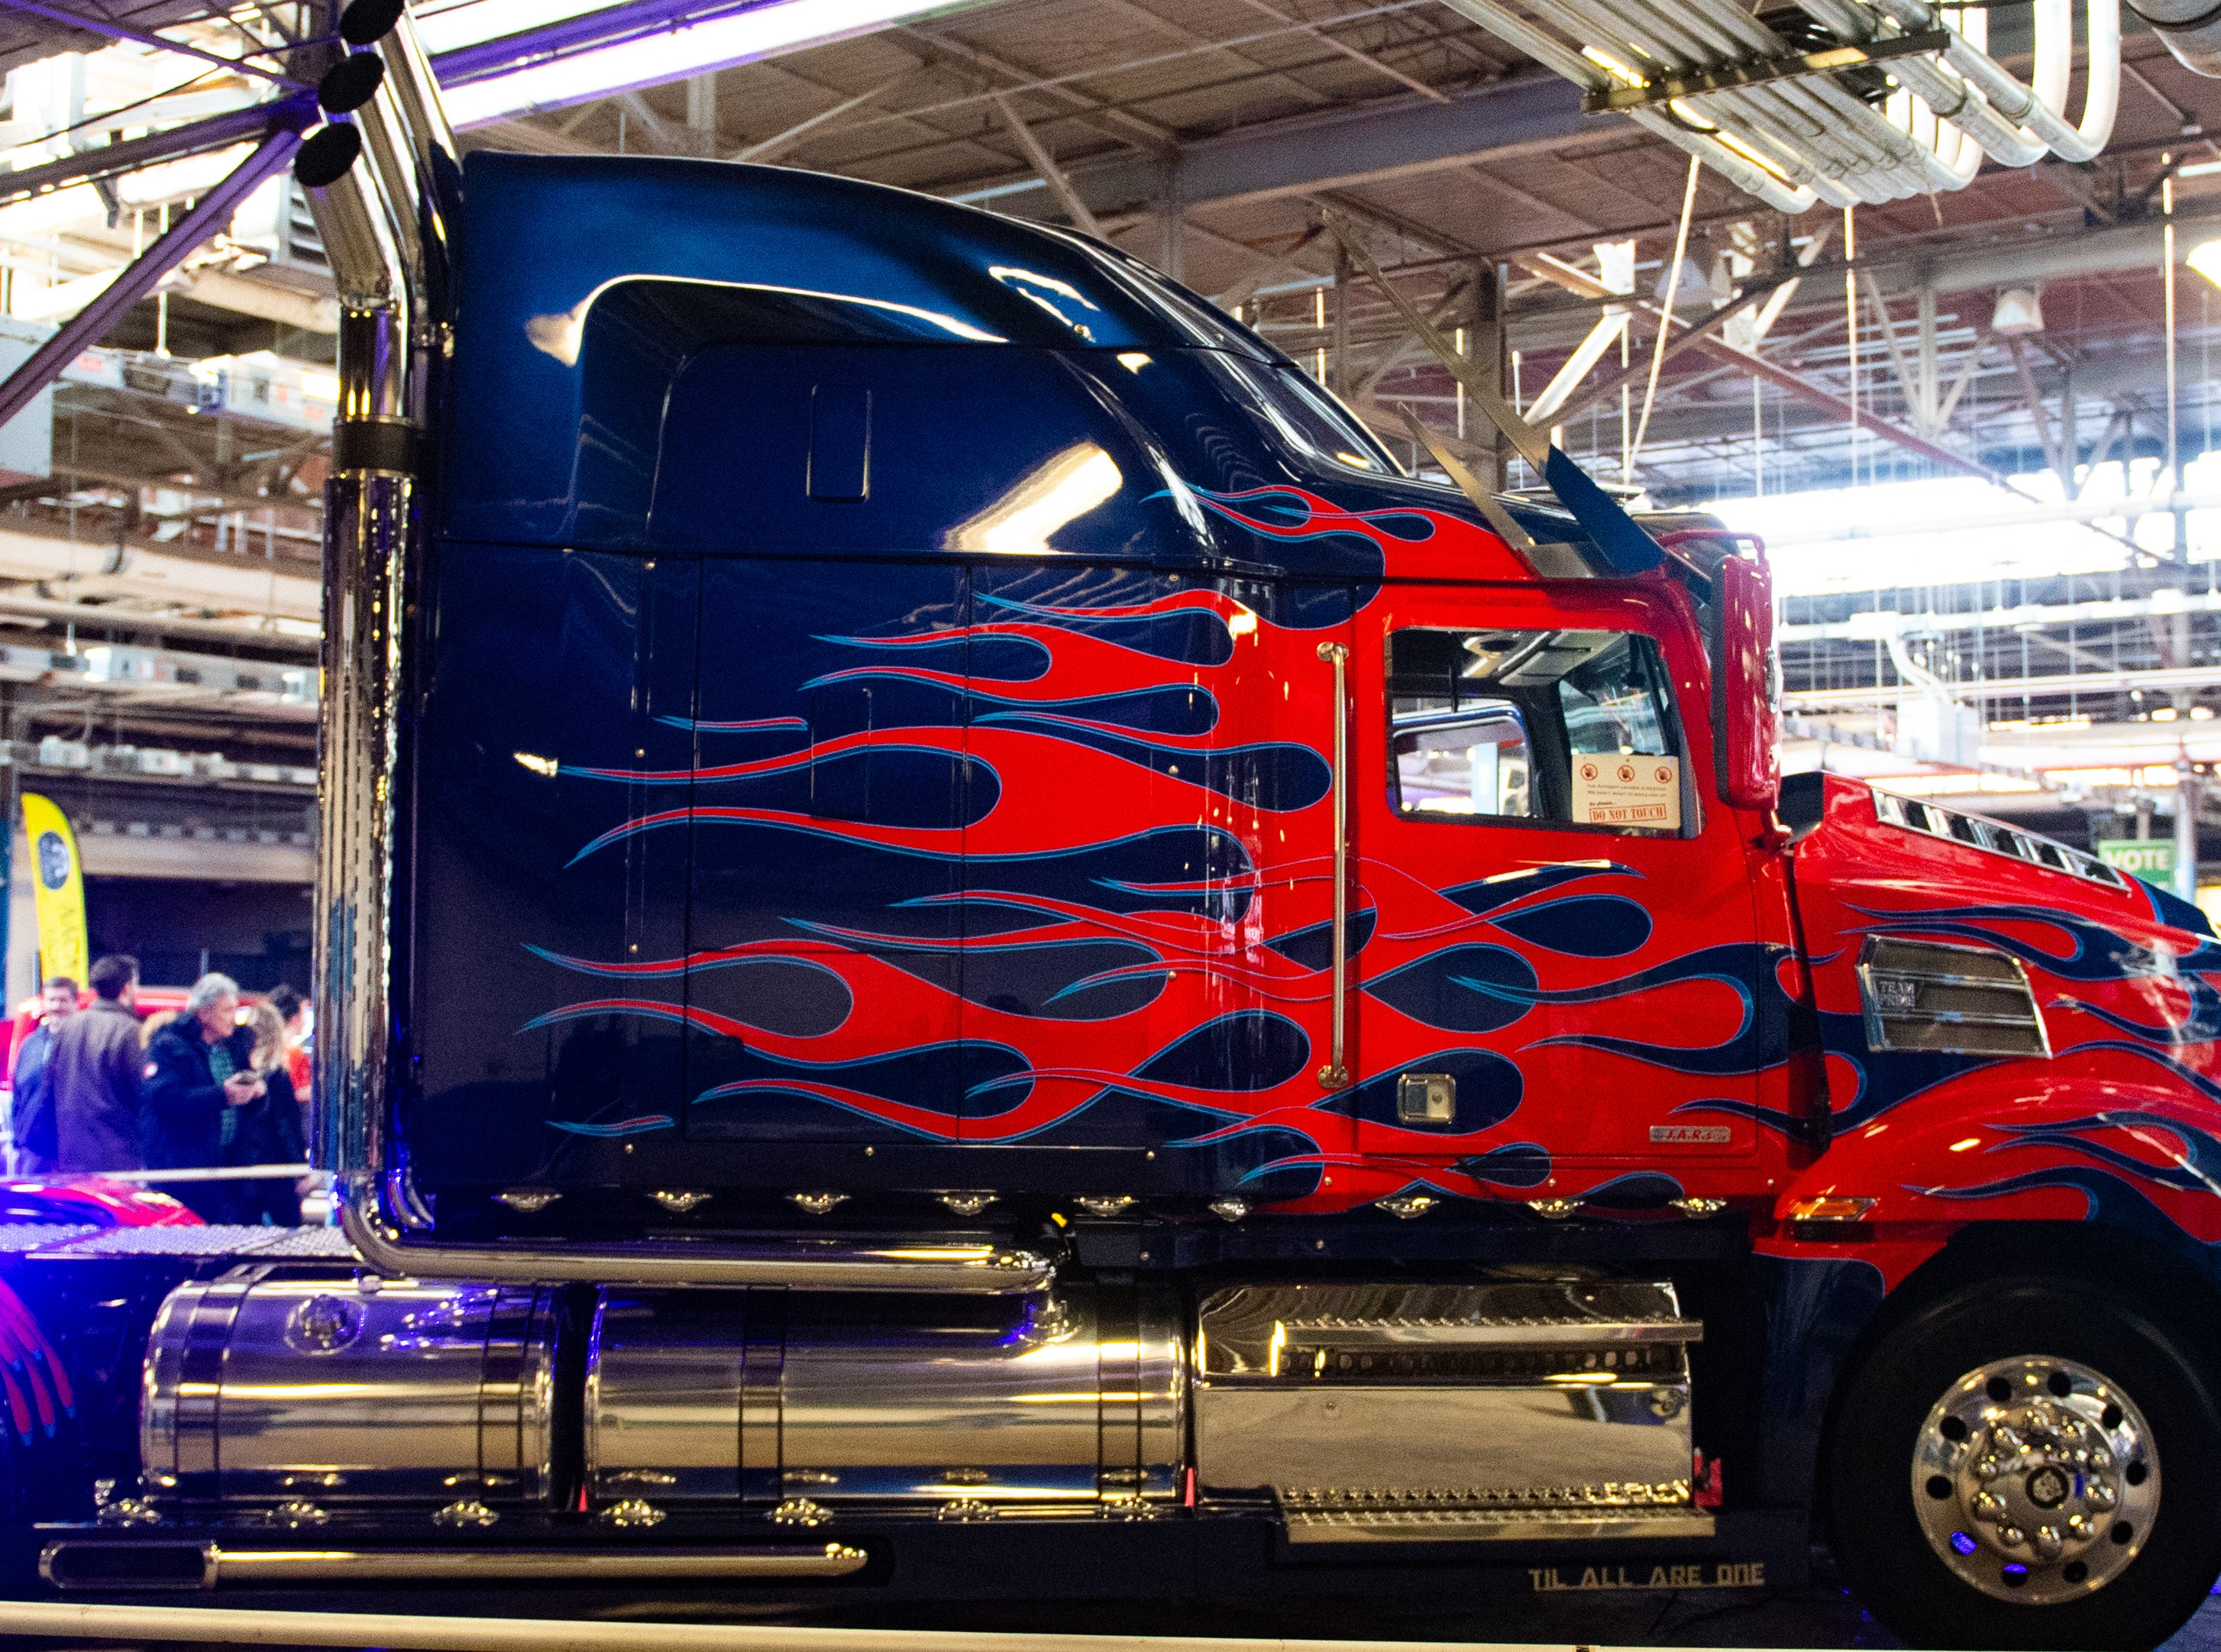 A tractor trailer painted the same way as Optimus Prime, sits in the show room during the 2019 Pennsylvania Auto Show, Saturday, January 26, 2019 at the Pennsylvania Farm Show Complex & Expo Center. The auto show continues on Sunday from 10 a.m. to 5 p.m.